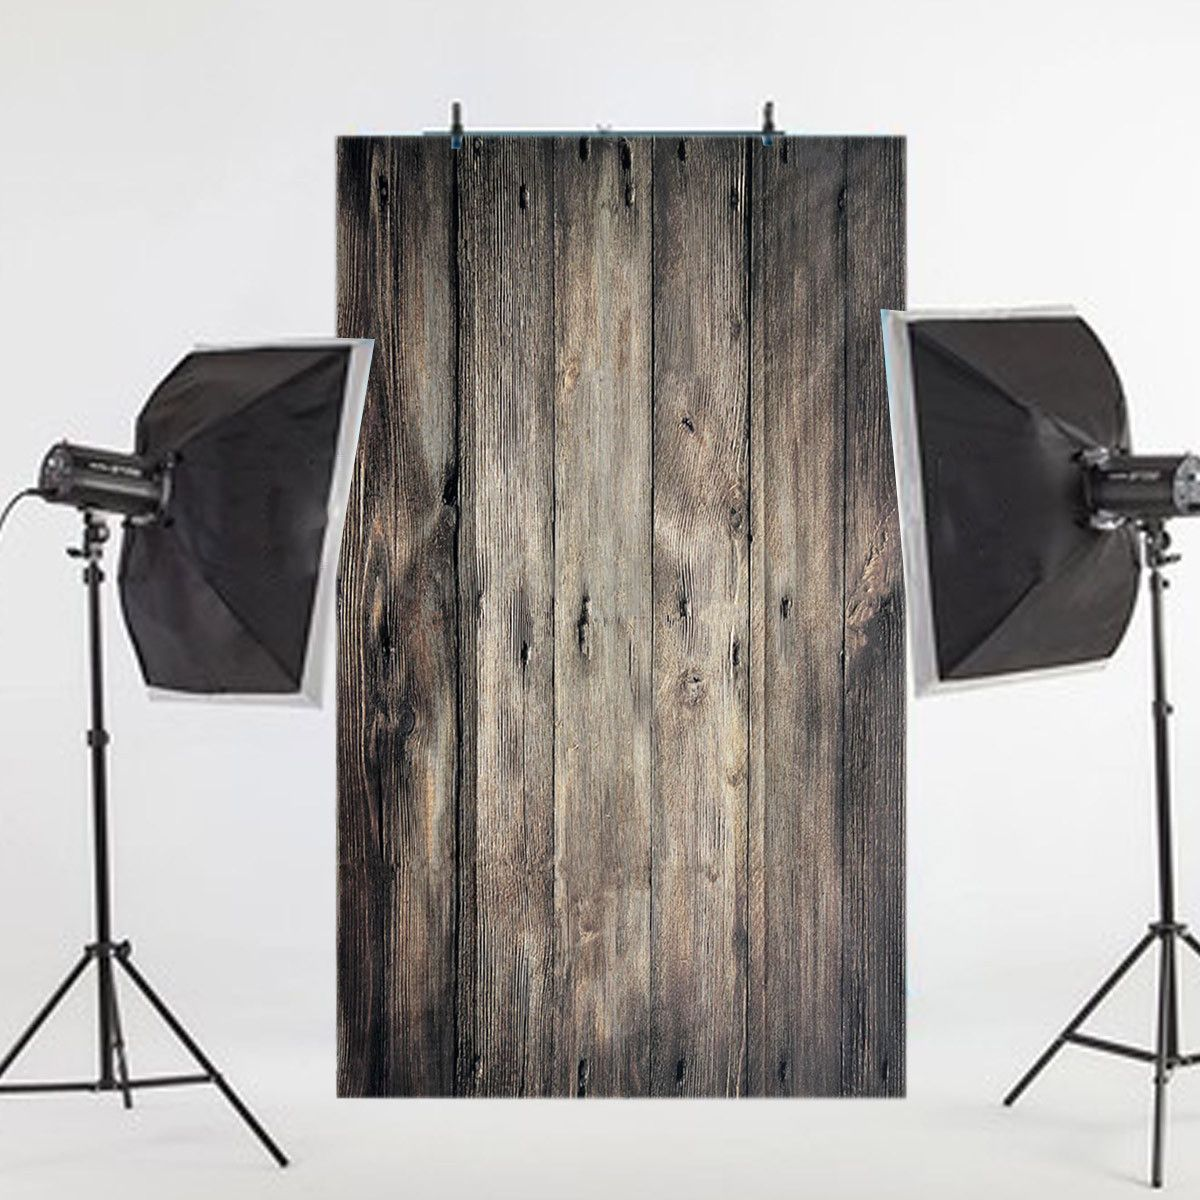 3x5FT Vintage Photography Backdrops Wood Vintage Photography Backdrop Backgrounds Studio Wood Background Fotografia 300 600cm 10ft 20ft backgrounds backdrop wedding photography backdrops grass covered door photography backdrops